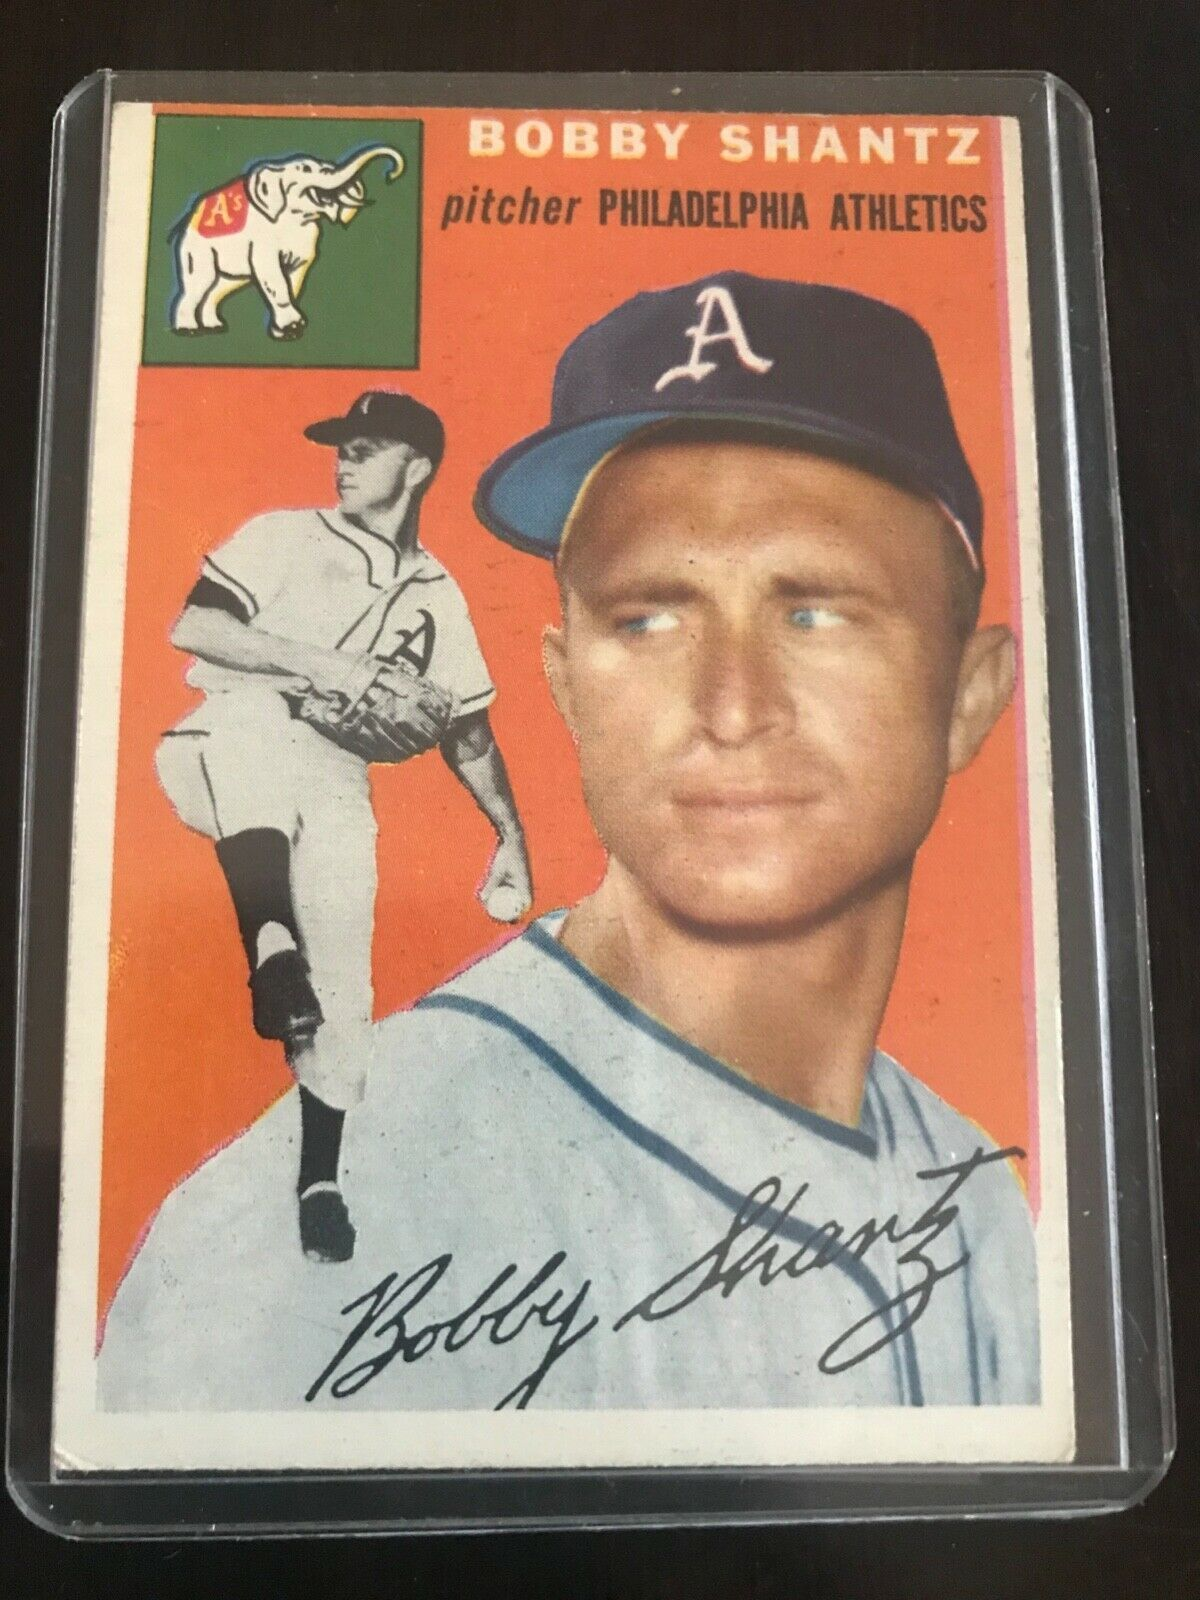 Primary image for 1954 Topps Bobby Shantz Philadelphia Athletics #21 Baseball Card